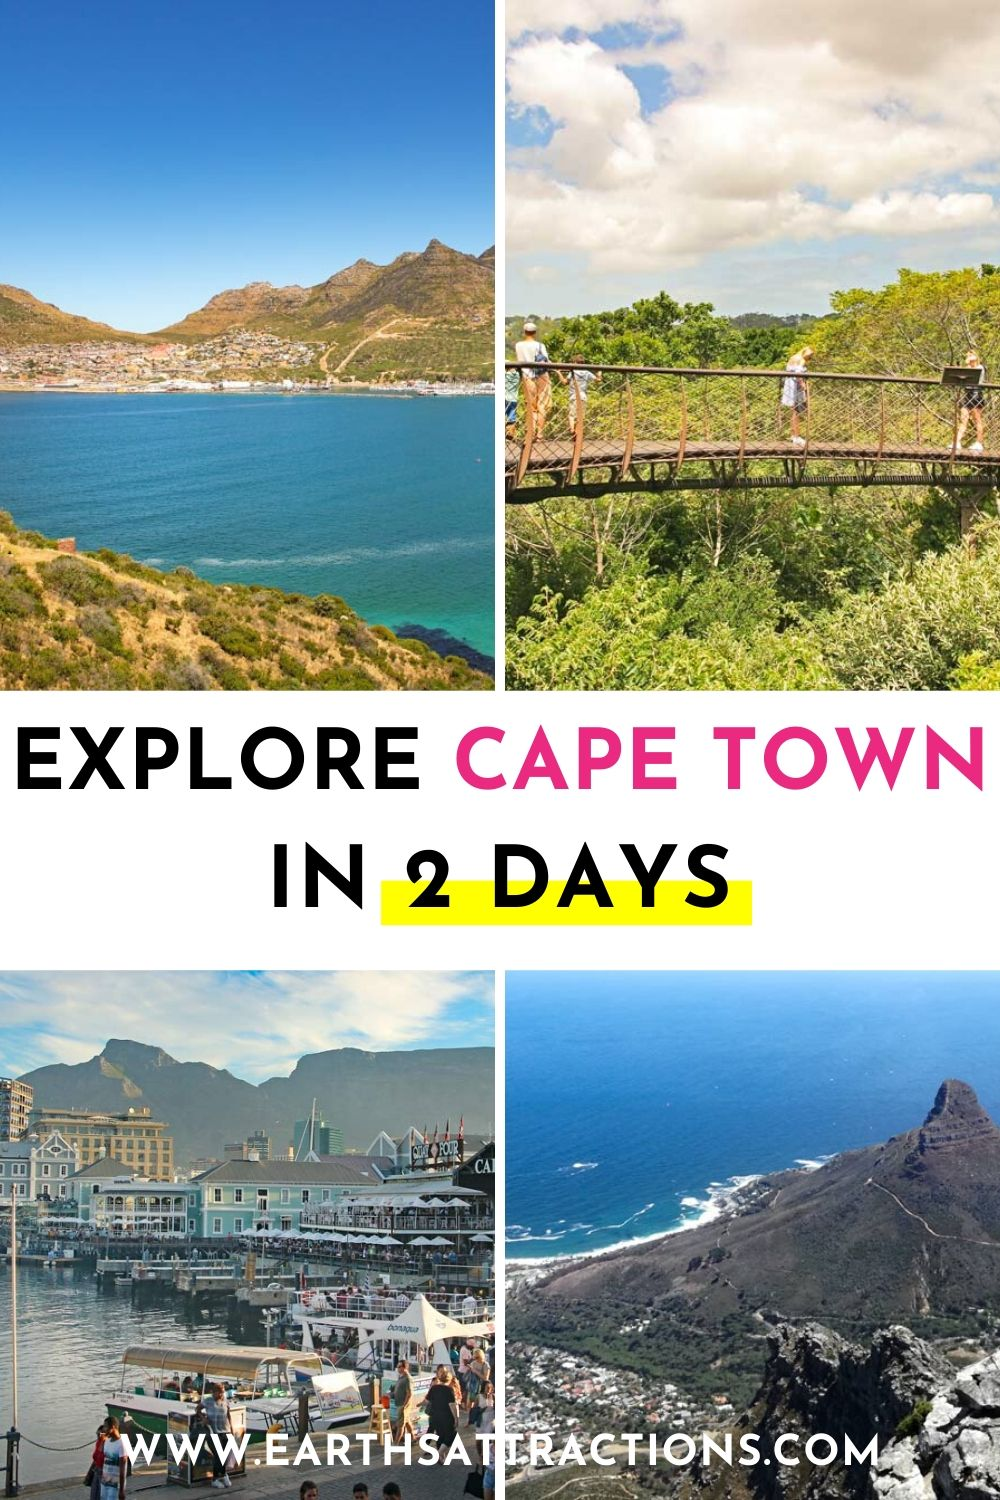 Explore Cape Town in 2 days. Discover the perfect Cape Town itinerary by a local. It includes the best places to visit in Cape Town in 2 days. #capetown #southafrica #capetownitinerary #itinerary #capetowntrip #traveldestinations #earthsattractions #capetownthingstodo